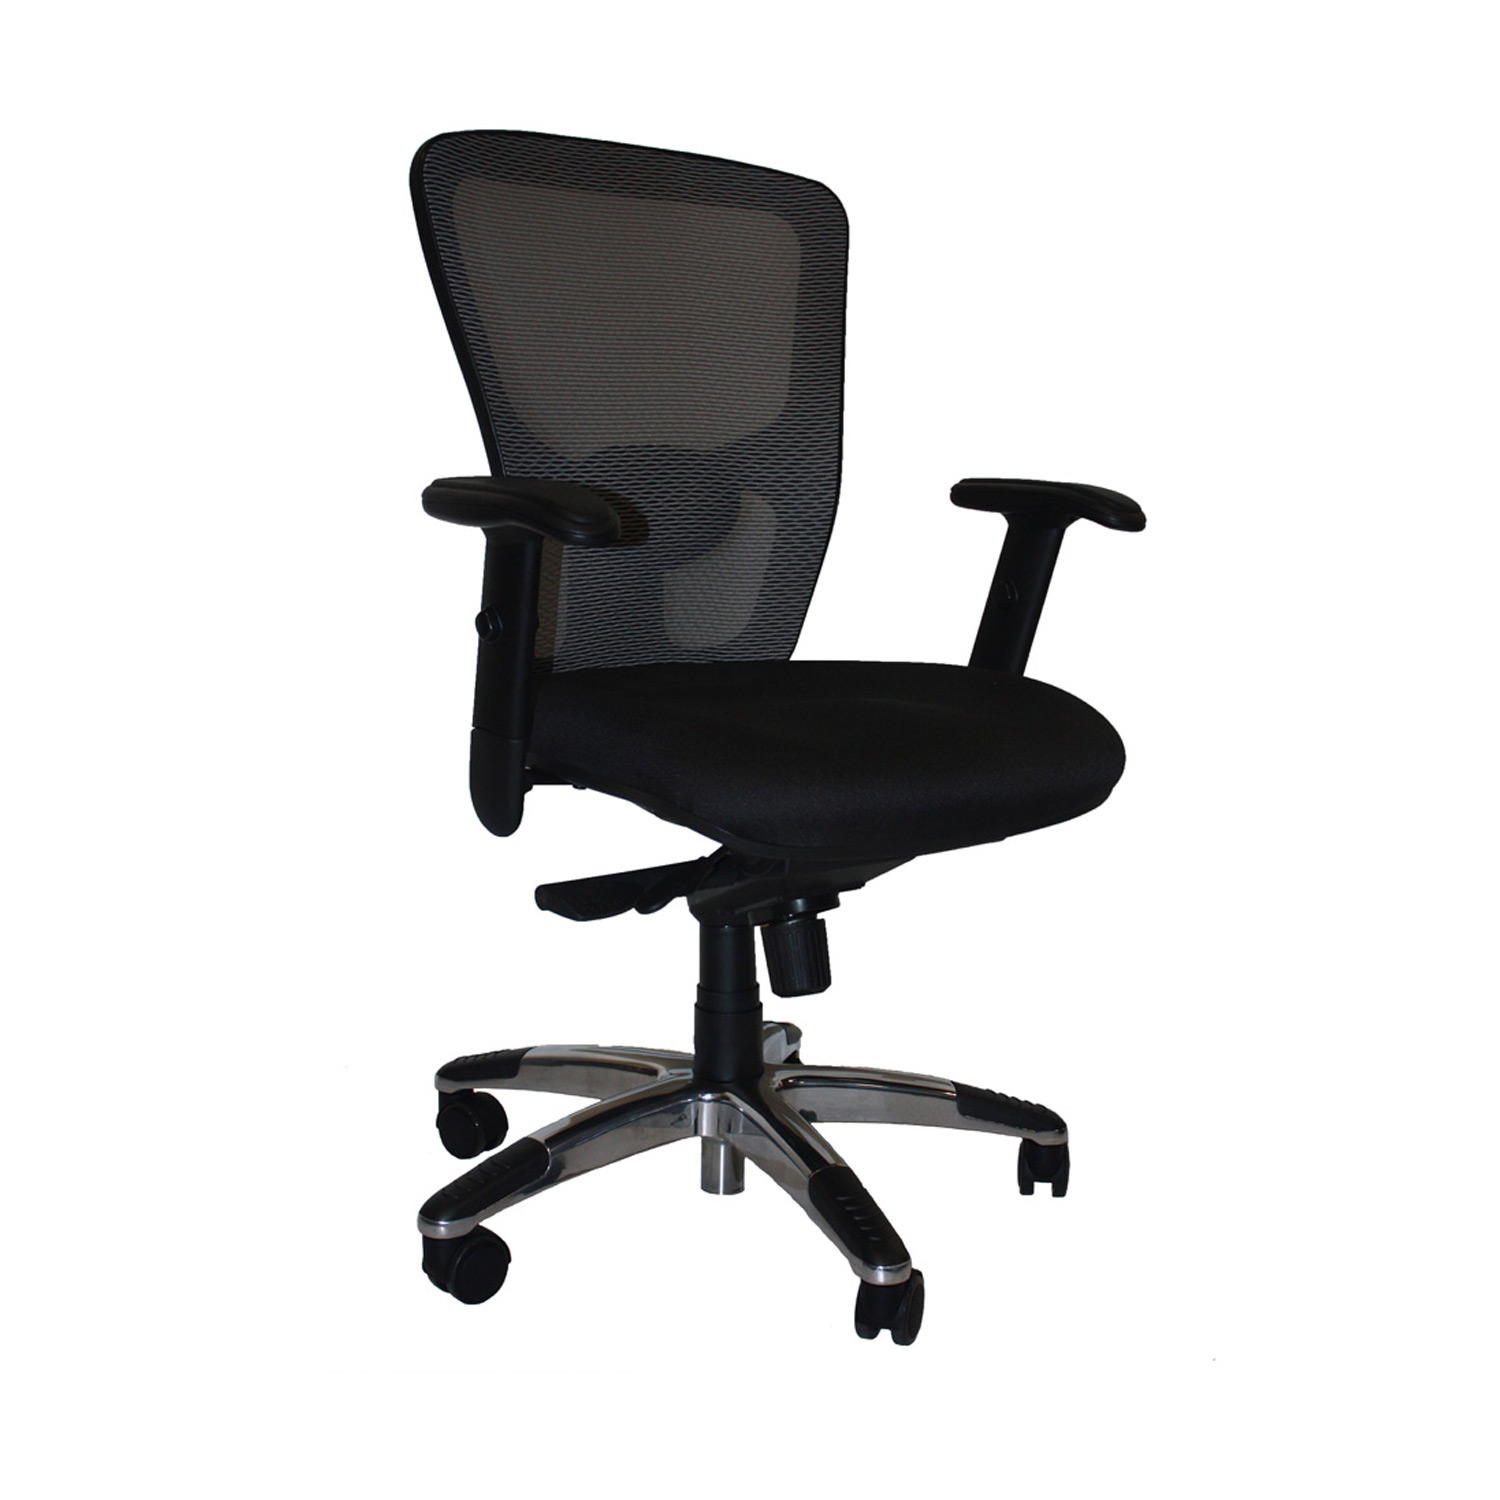 OPS task chair #5688